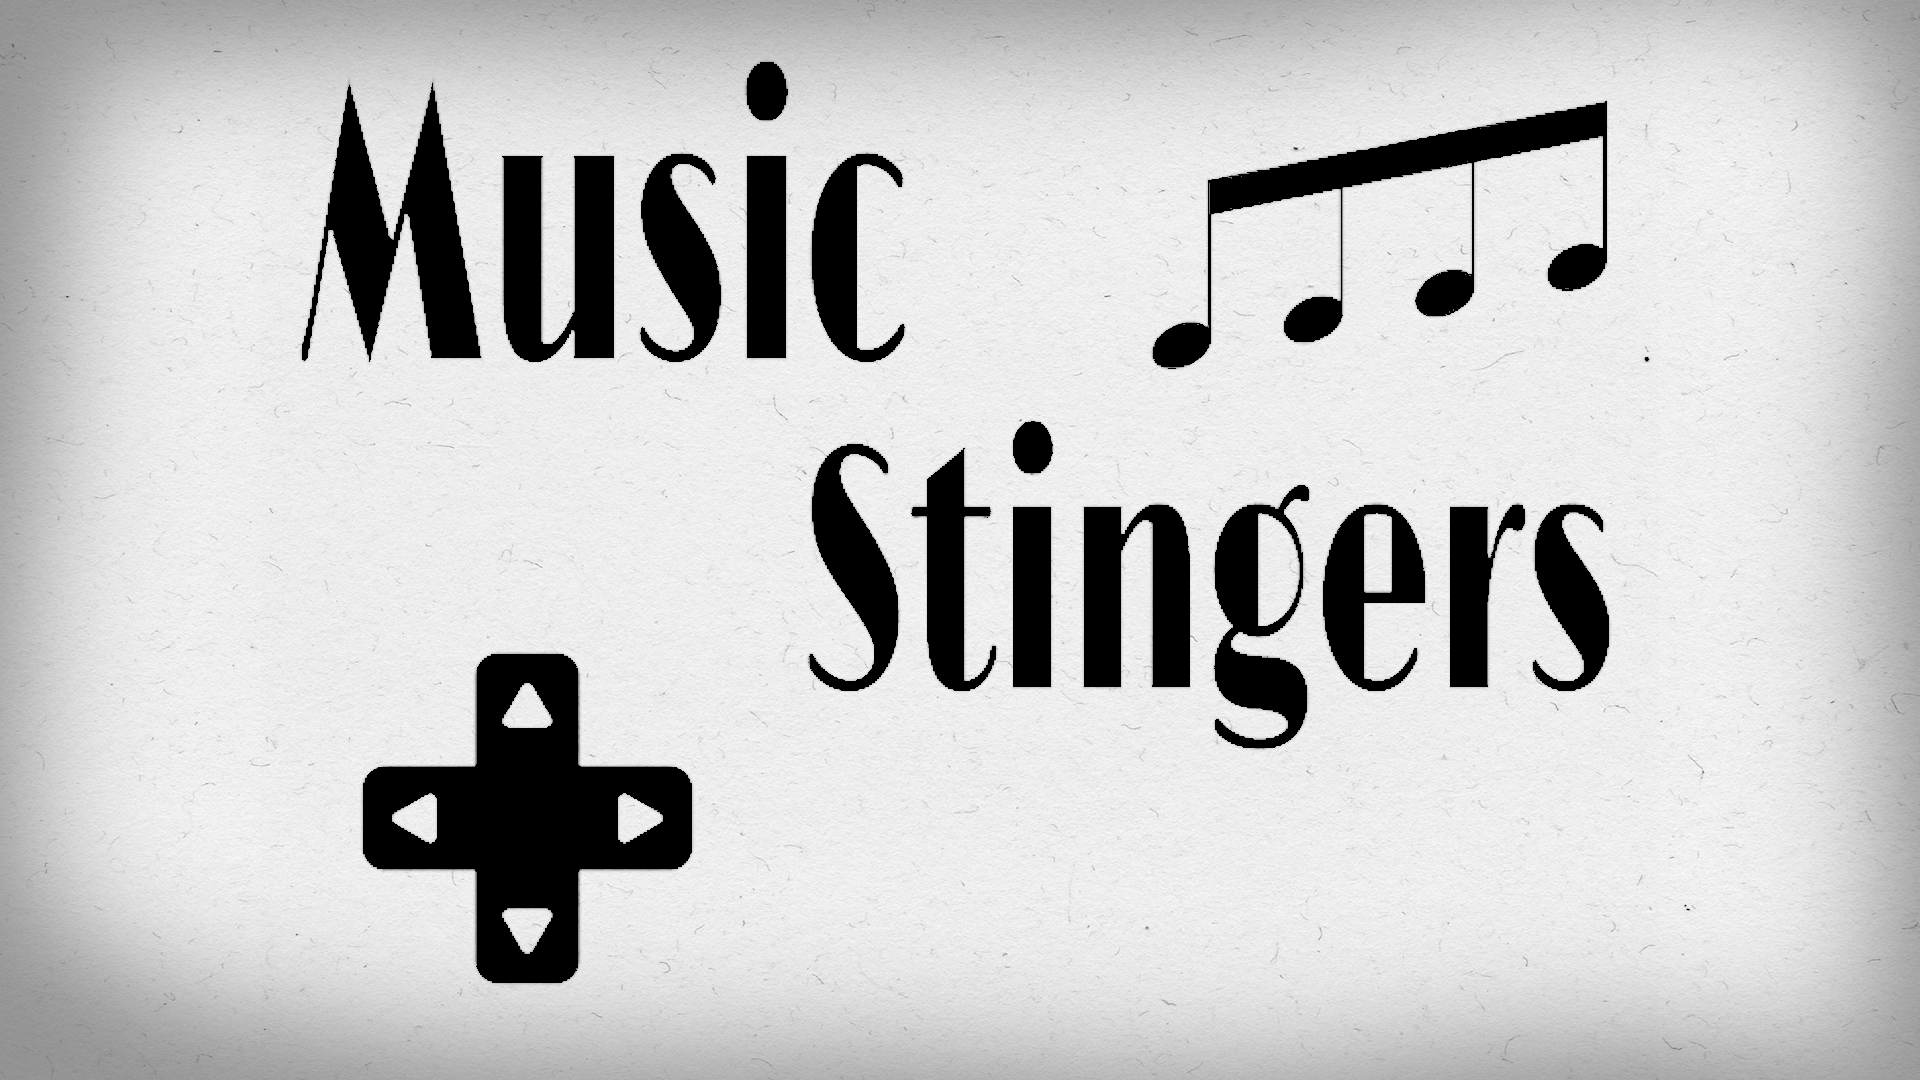 Music Stingers by Alchemy Studio